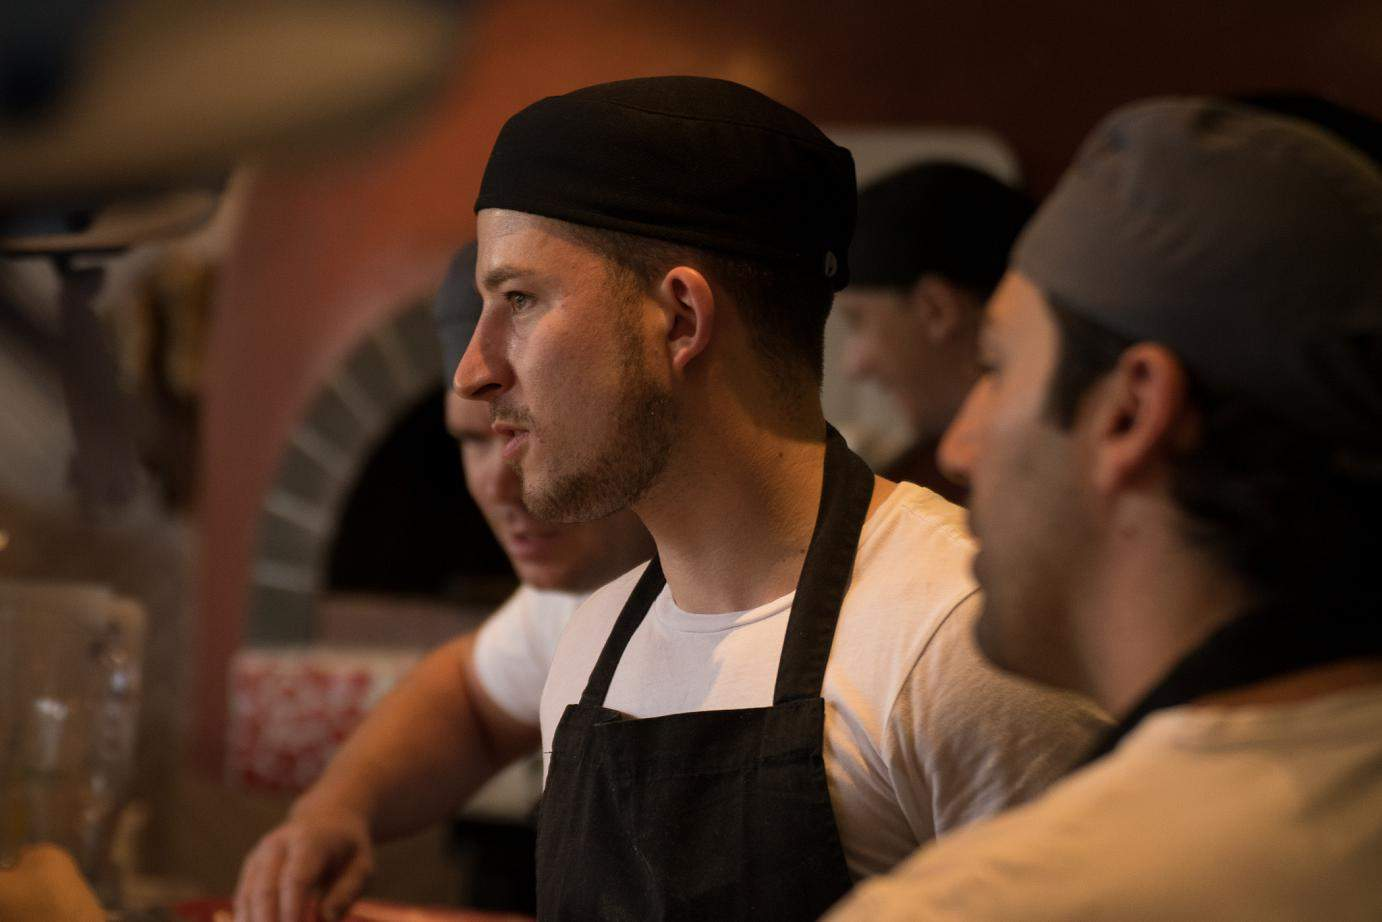 Chefs at The Potting Shed